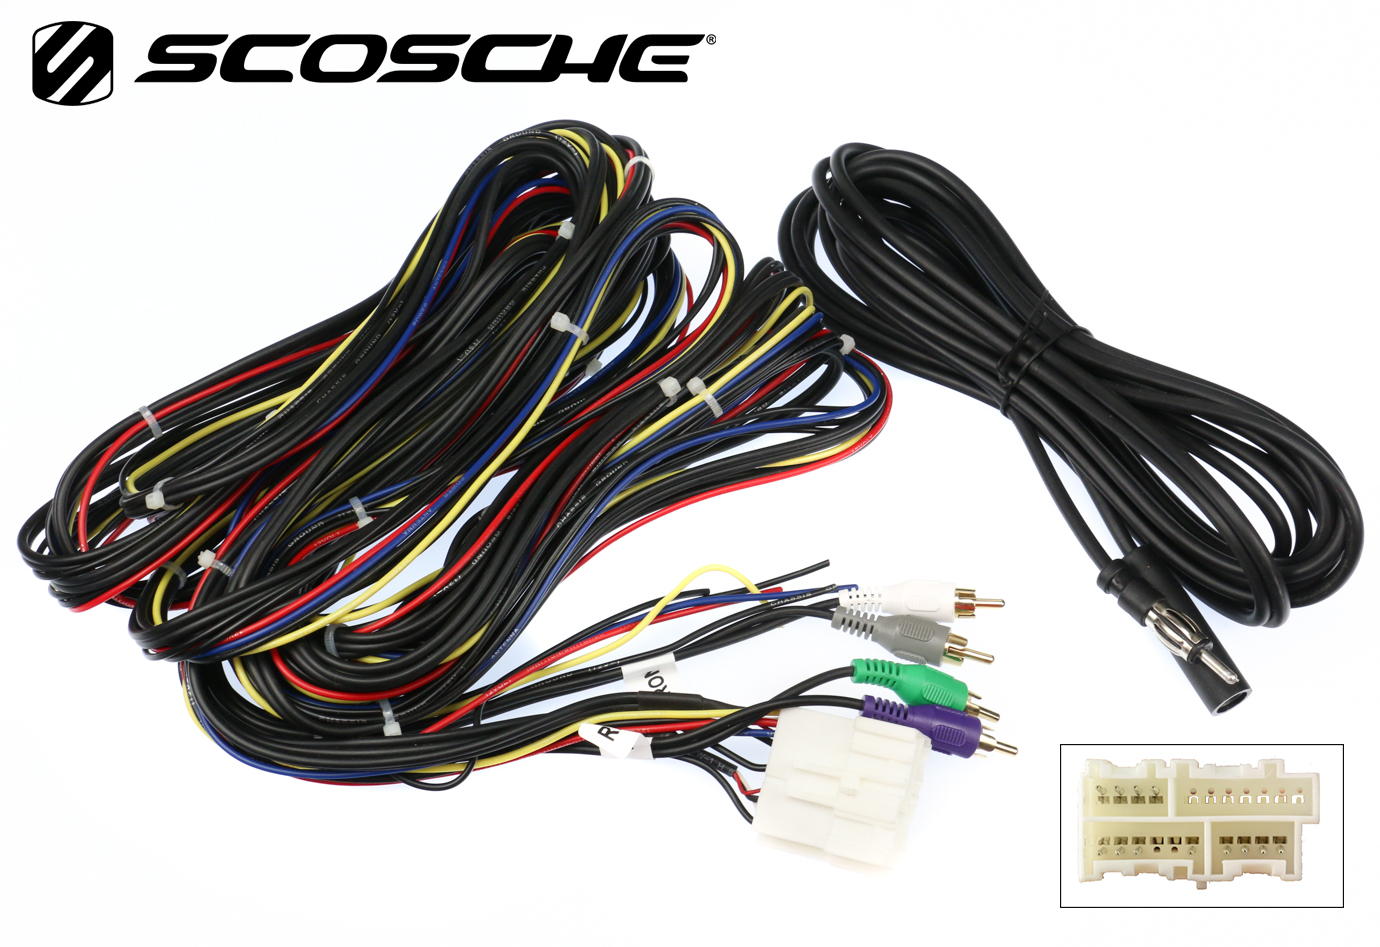 Tuner Bypass Car Stereo Cd Player Wiring Harness Wire Aftermarket 1992 Corvette Radio Links